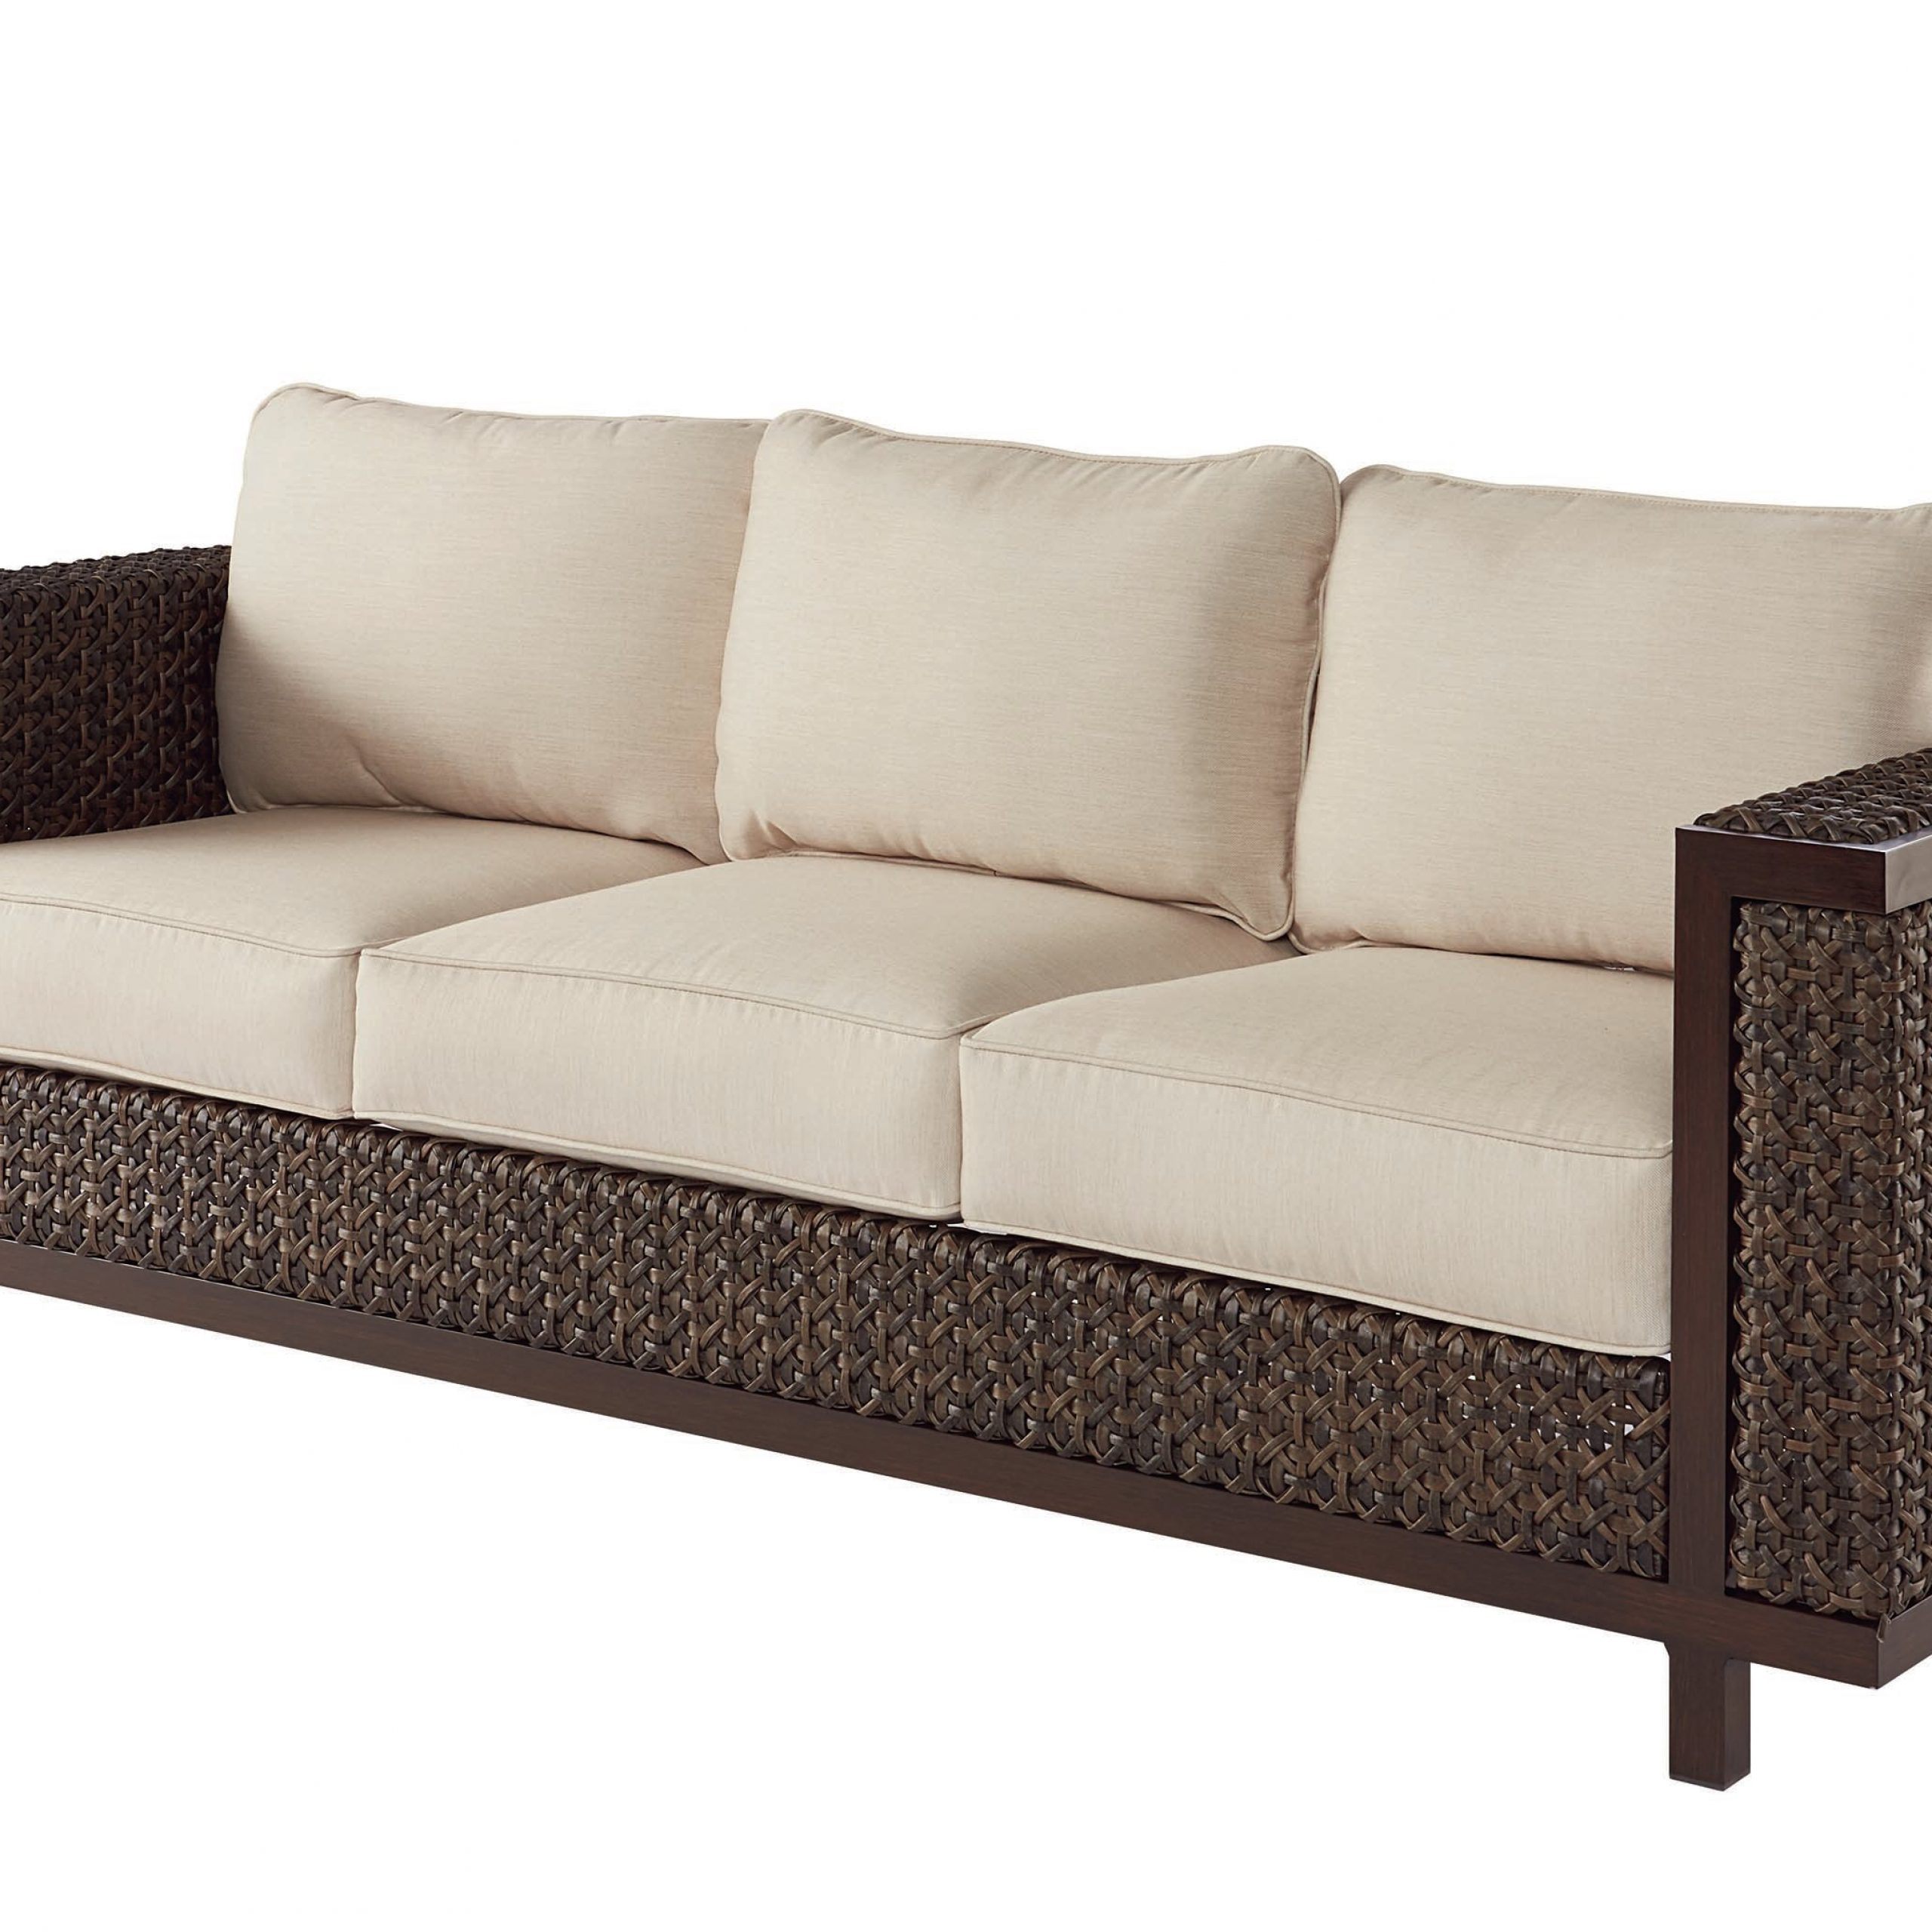 Well Liked Astrid Wicker Patio Sofas With Cushions Within Asphodèle Wicker Patio Sofa With Cushions (View 1 of 25)